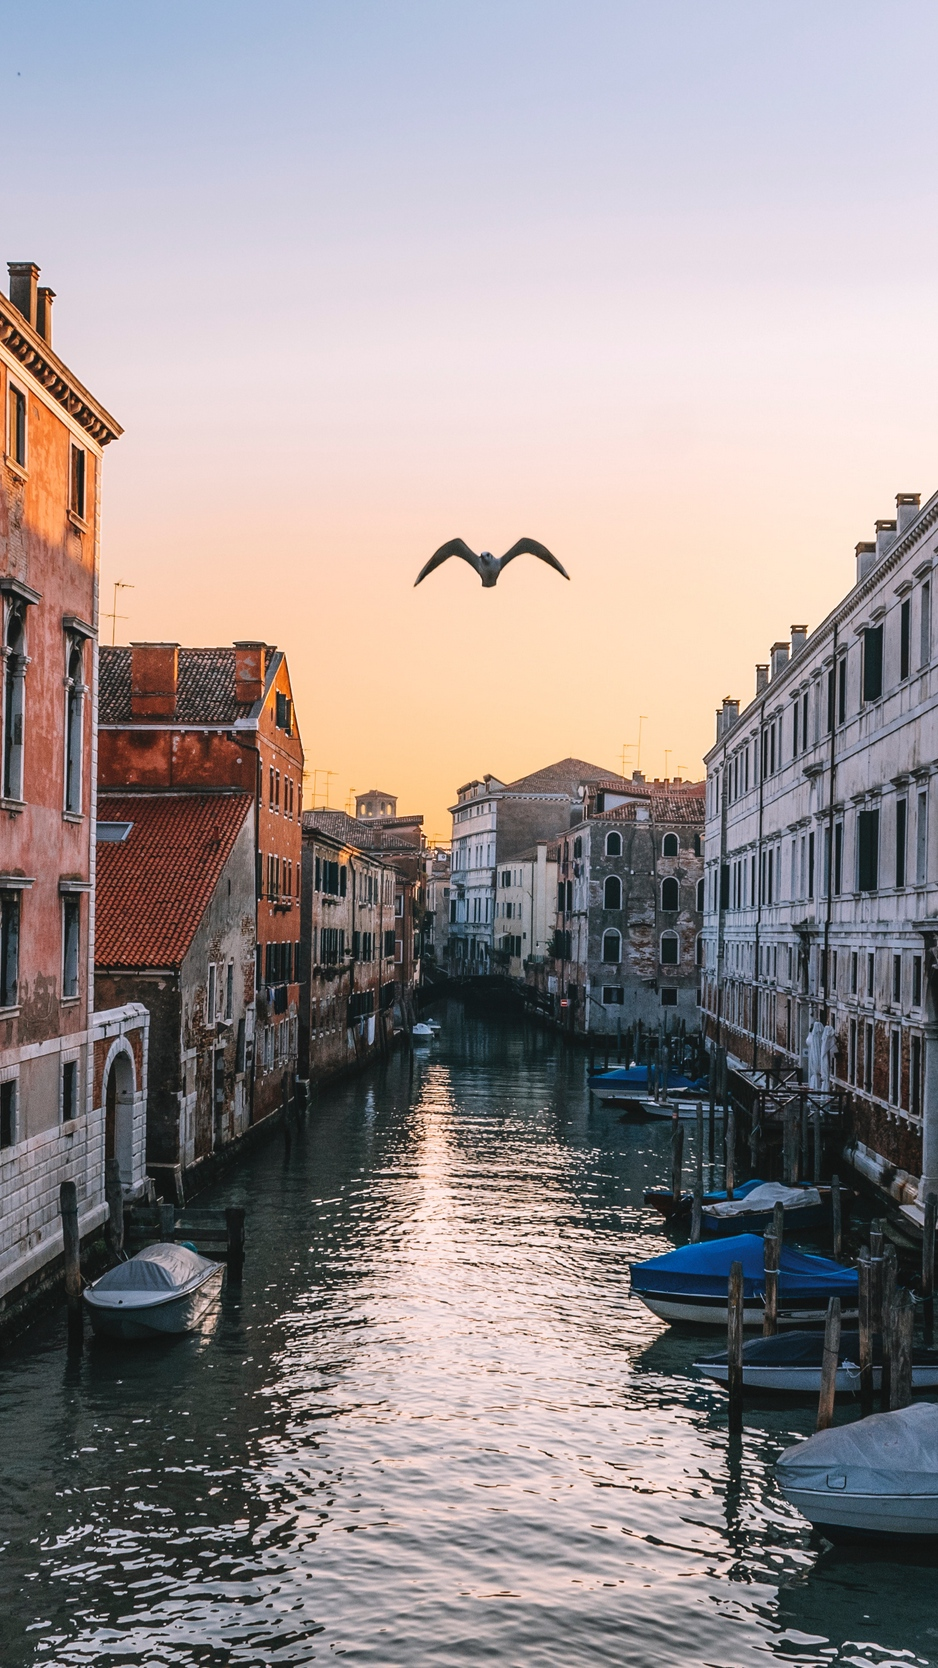 Download wallpaper 938x1668 venice italy canal seagull river 938x1668